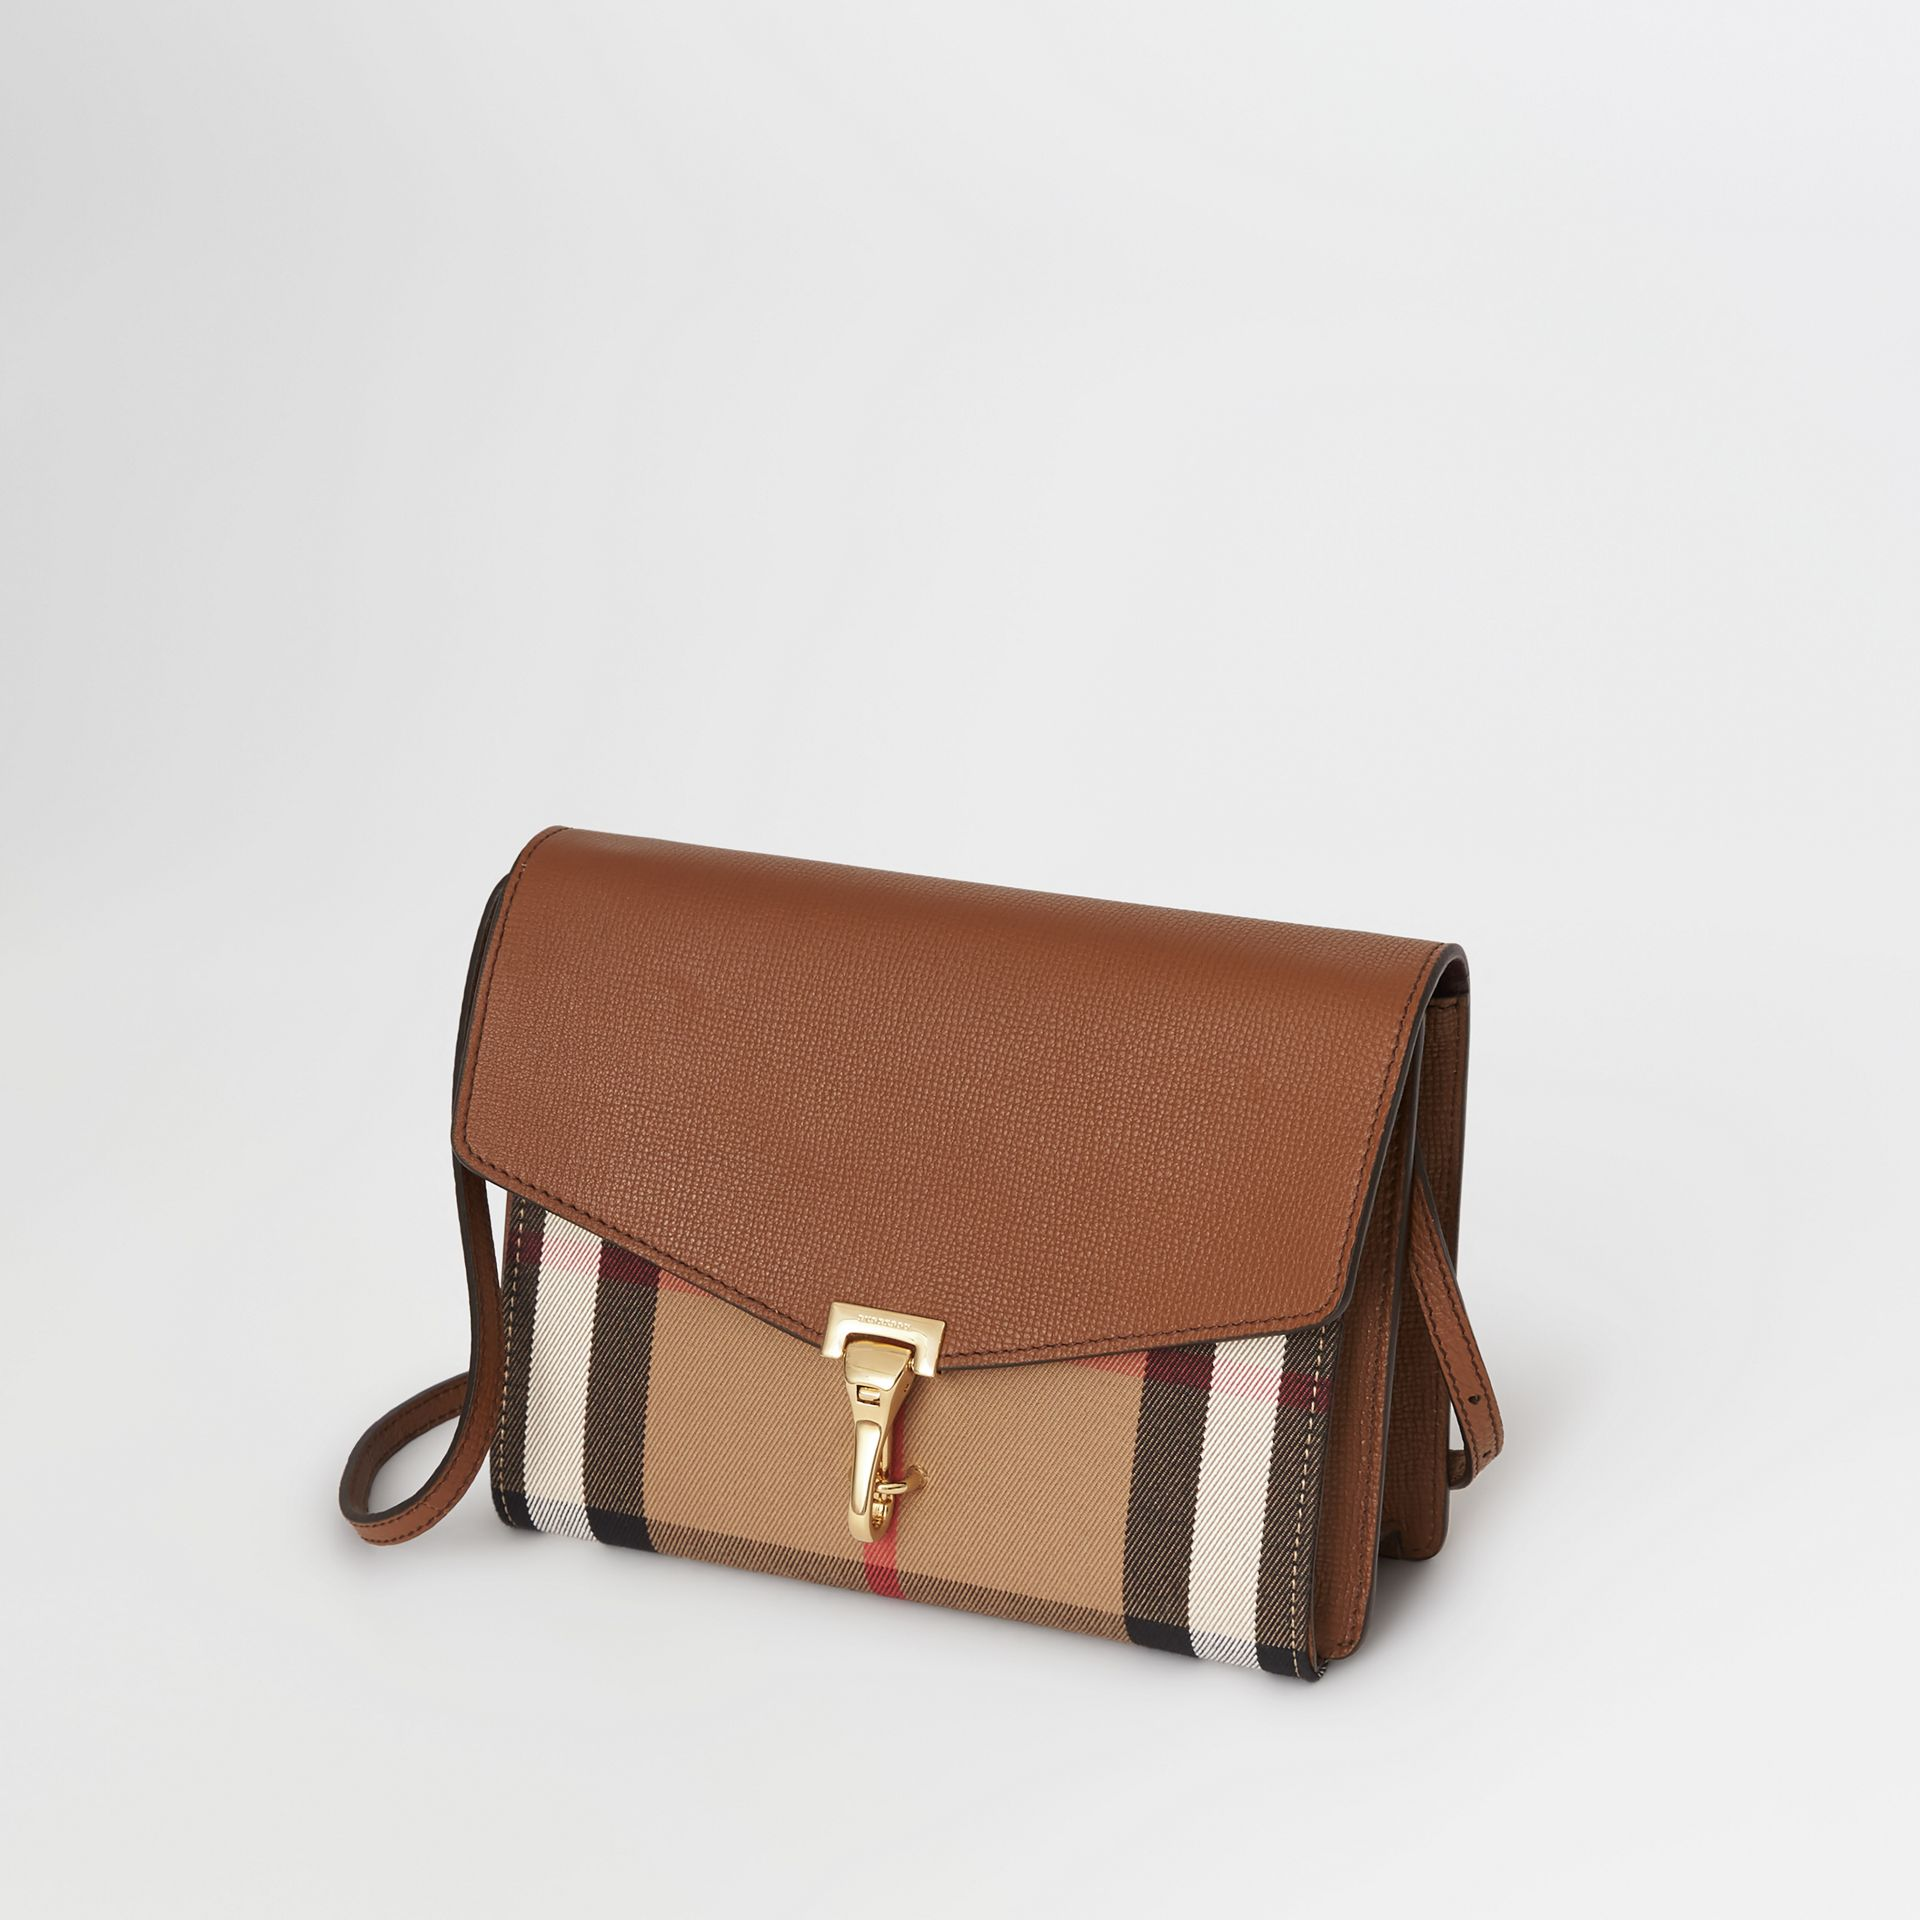 Small Leather and House Check Crossbody Bag in Tan - Women | Burberry Hong Kong - gallery image 4